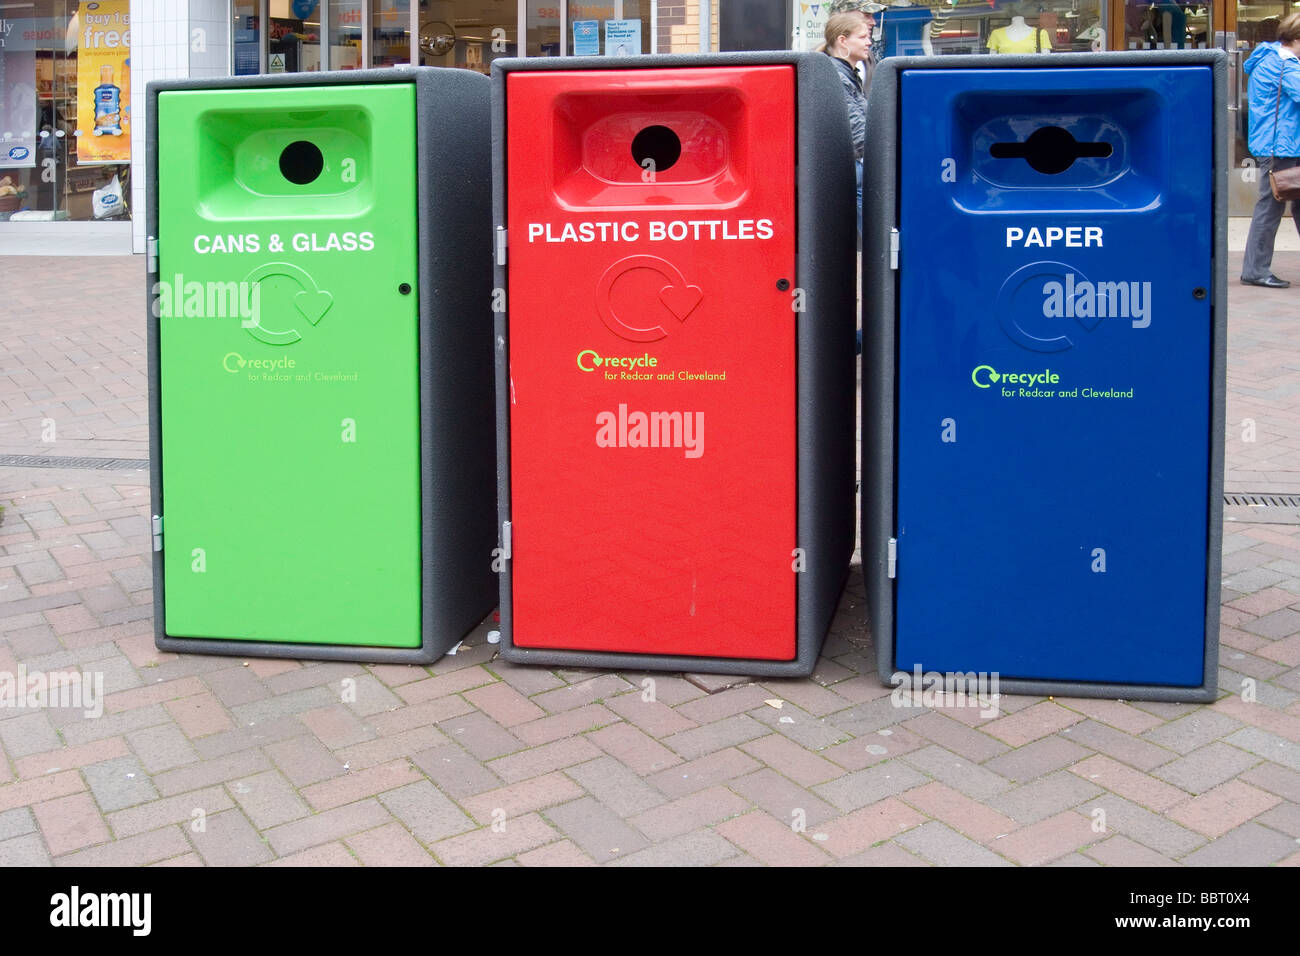 Smart new recycling bins for cans and glass plastic bottles and paper in Redcar town centre Stock Photo